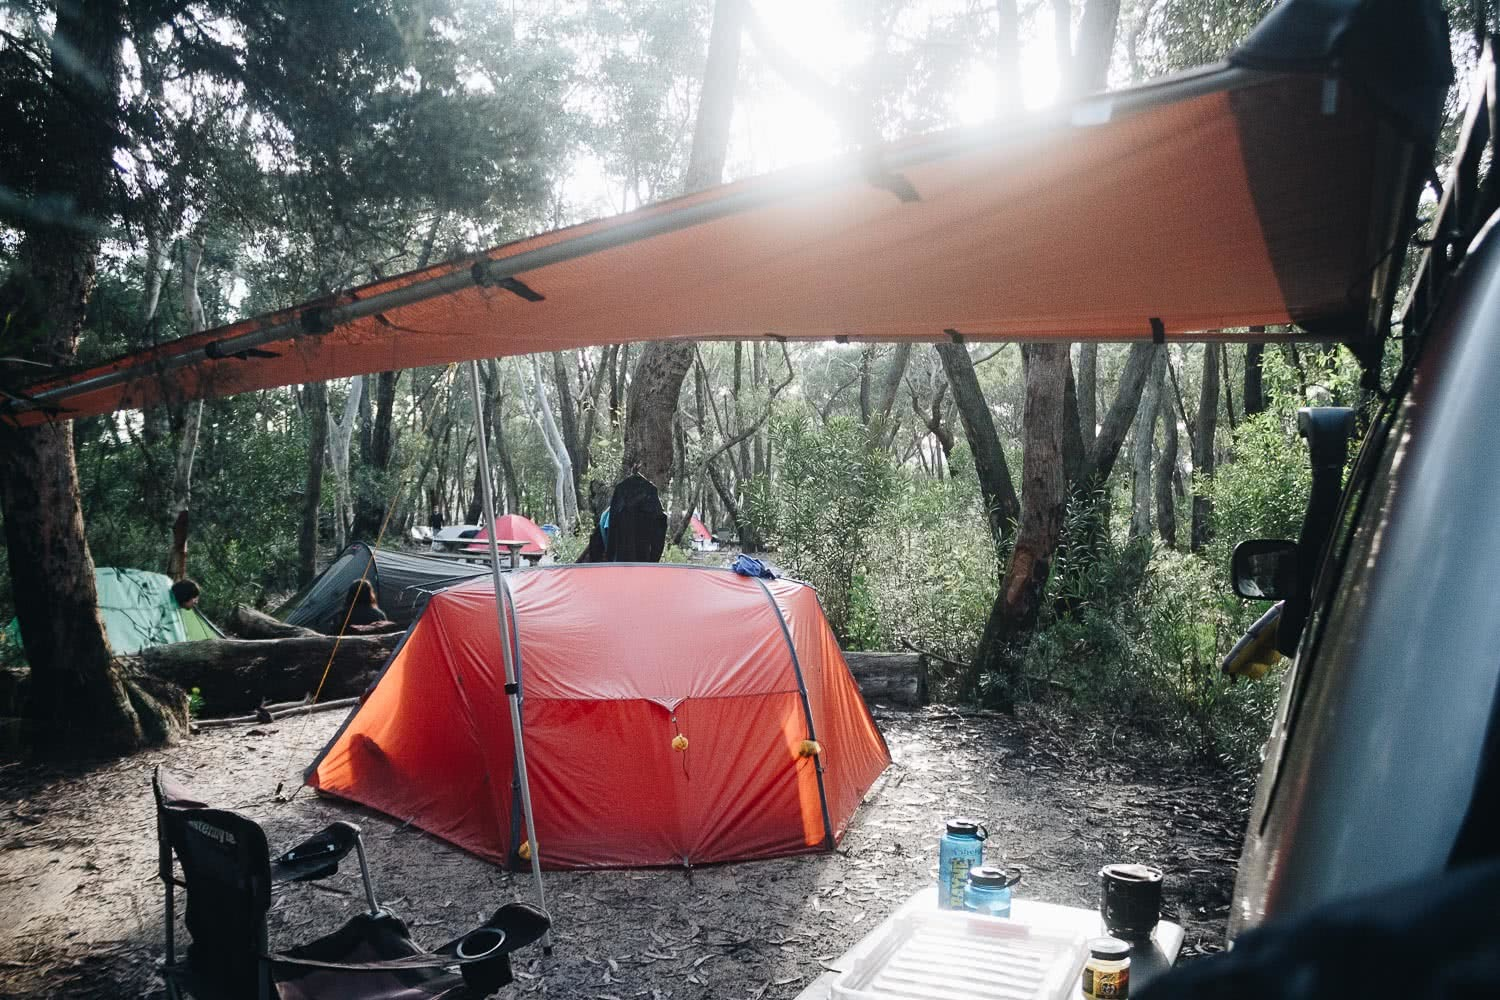 adventure is a privilege, photo by tim ashelford, perrys lookdown campground, blue mountains, nsw, tent, camping